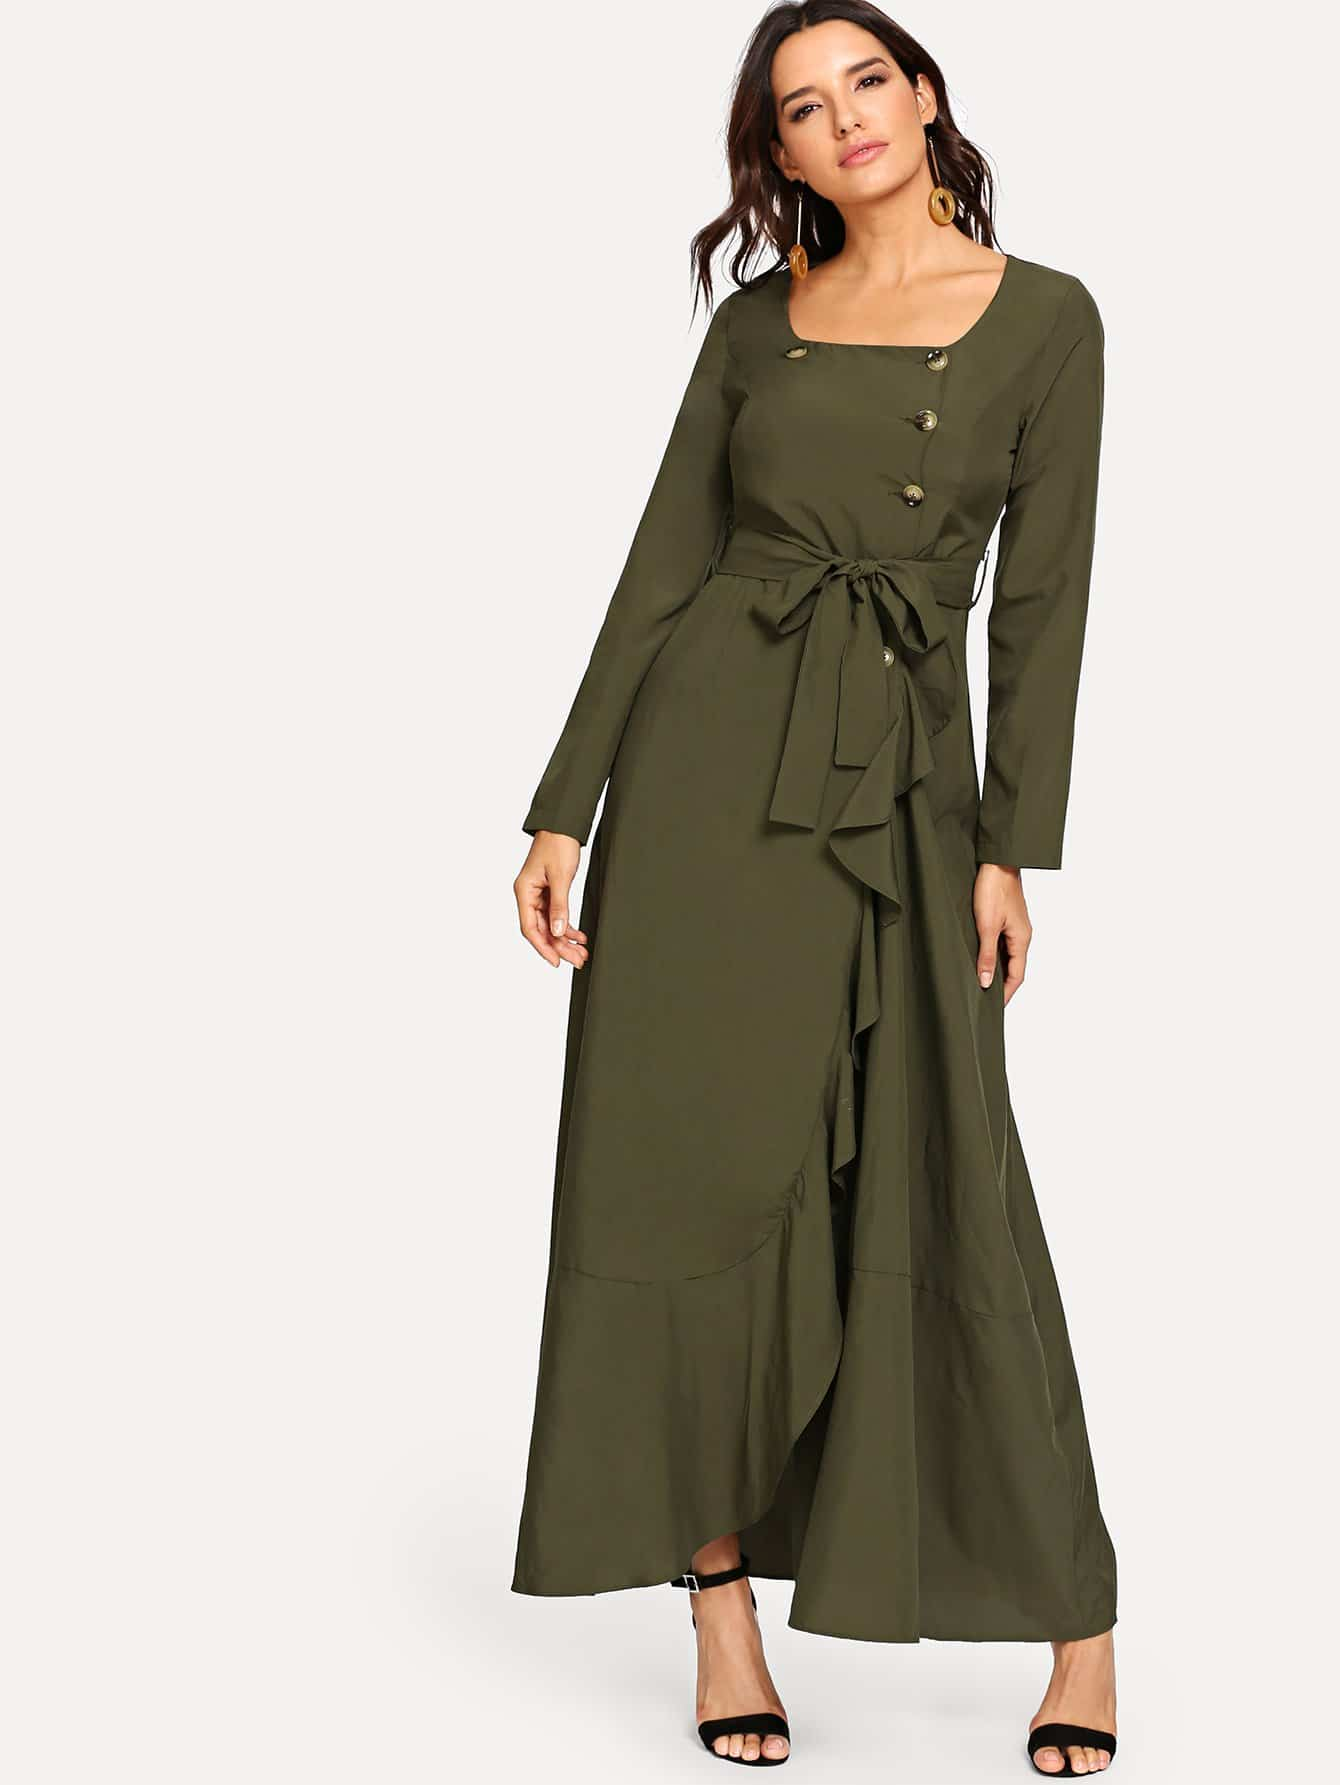 Ruffle Trim Button Up Belted Dress self belted solid ruffle trim dress